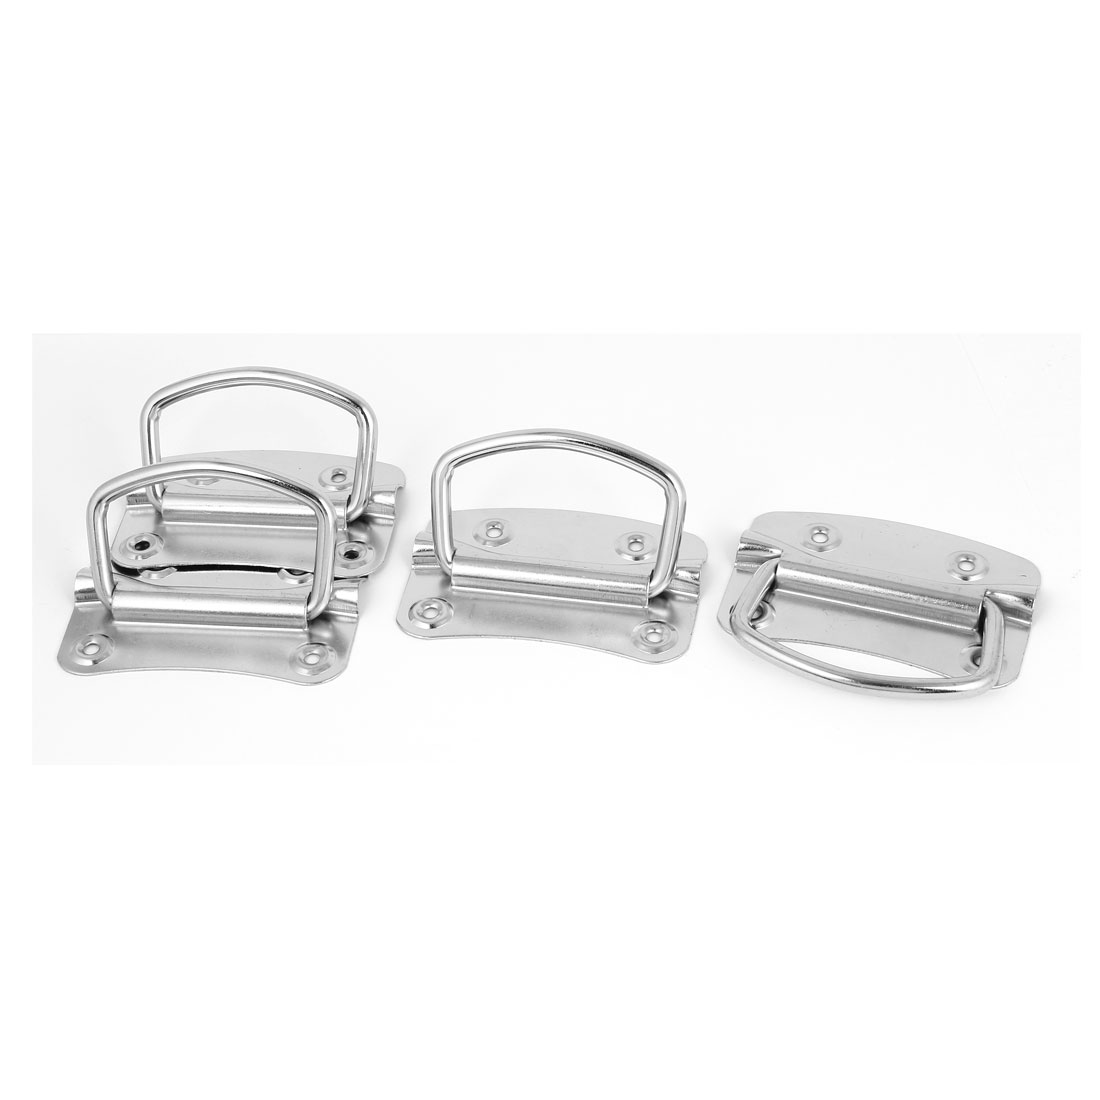 """Metal Toolbox Crates Boxes Puller Chest Handle Silver Tone 4"""" Length 4pcs"""